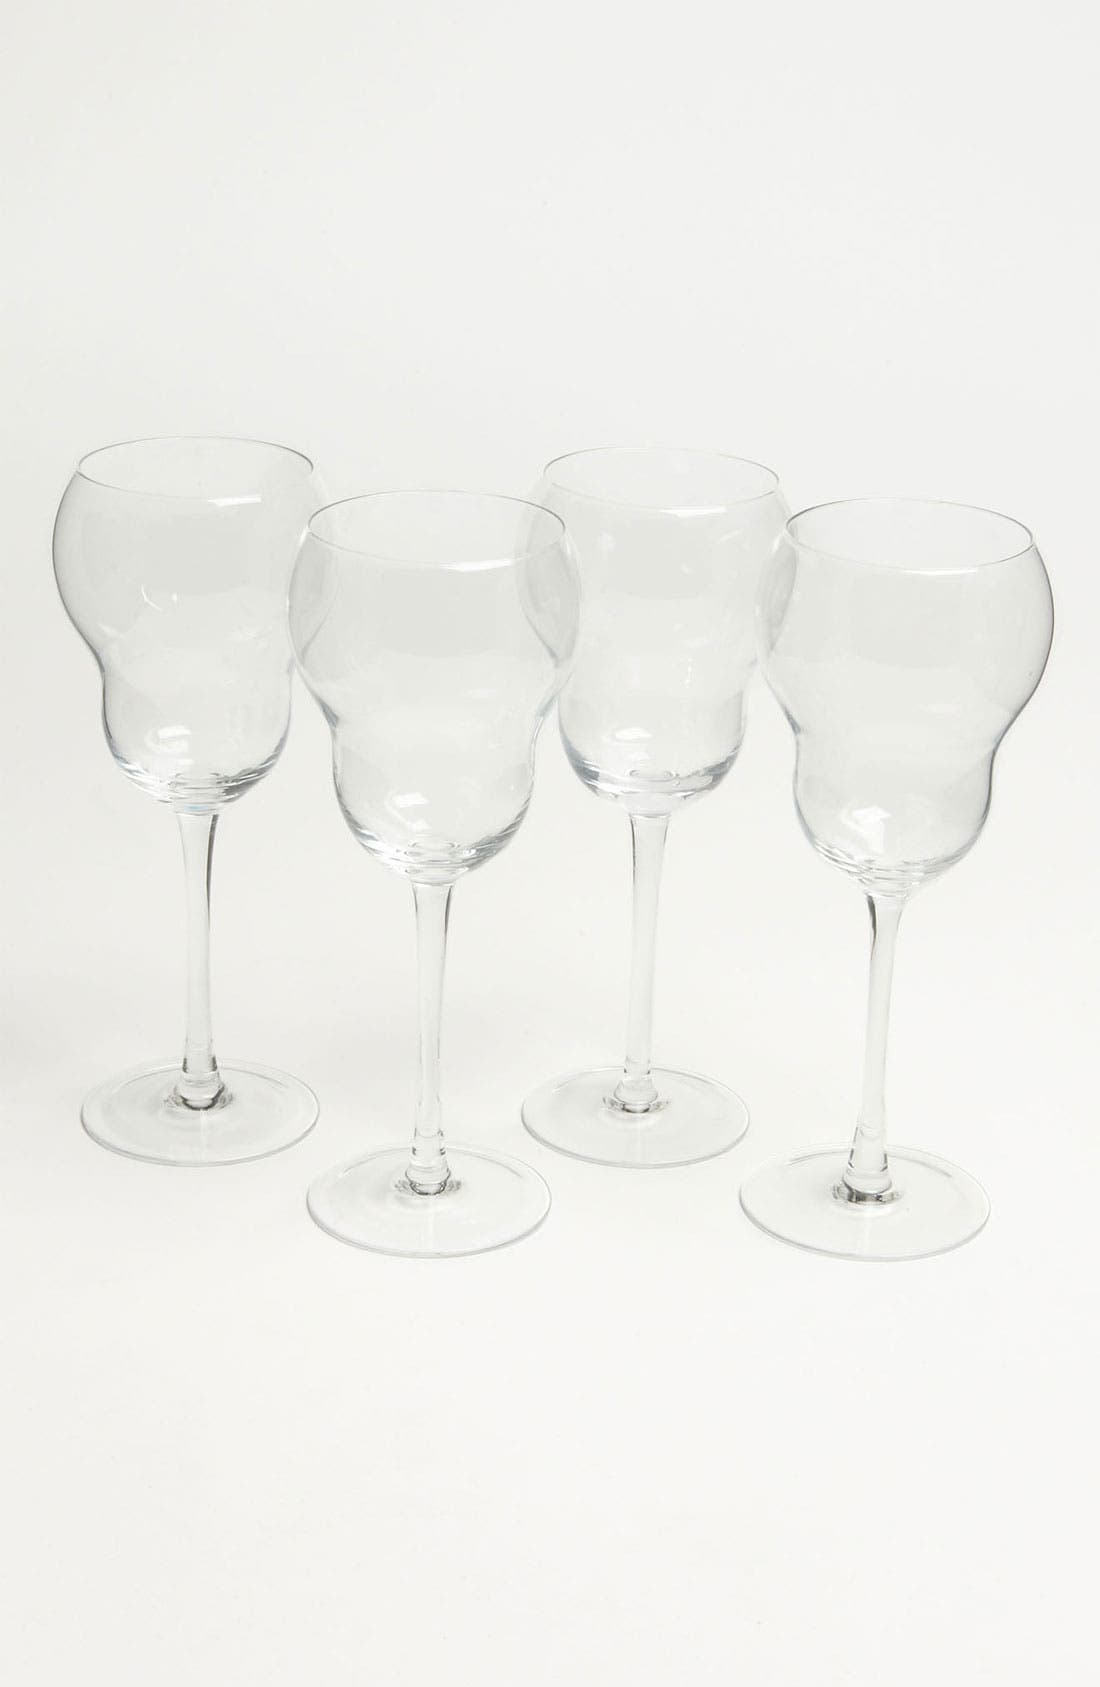 Alternate Image 1 Selected - 'Bubble' White Wine Glasses (Set of 4)